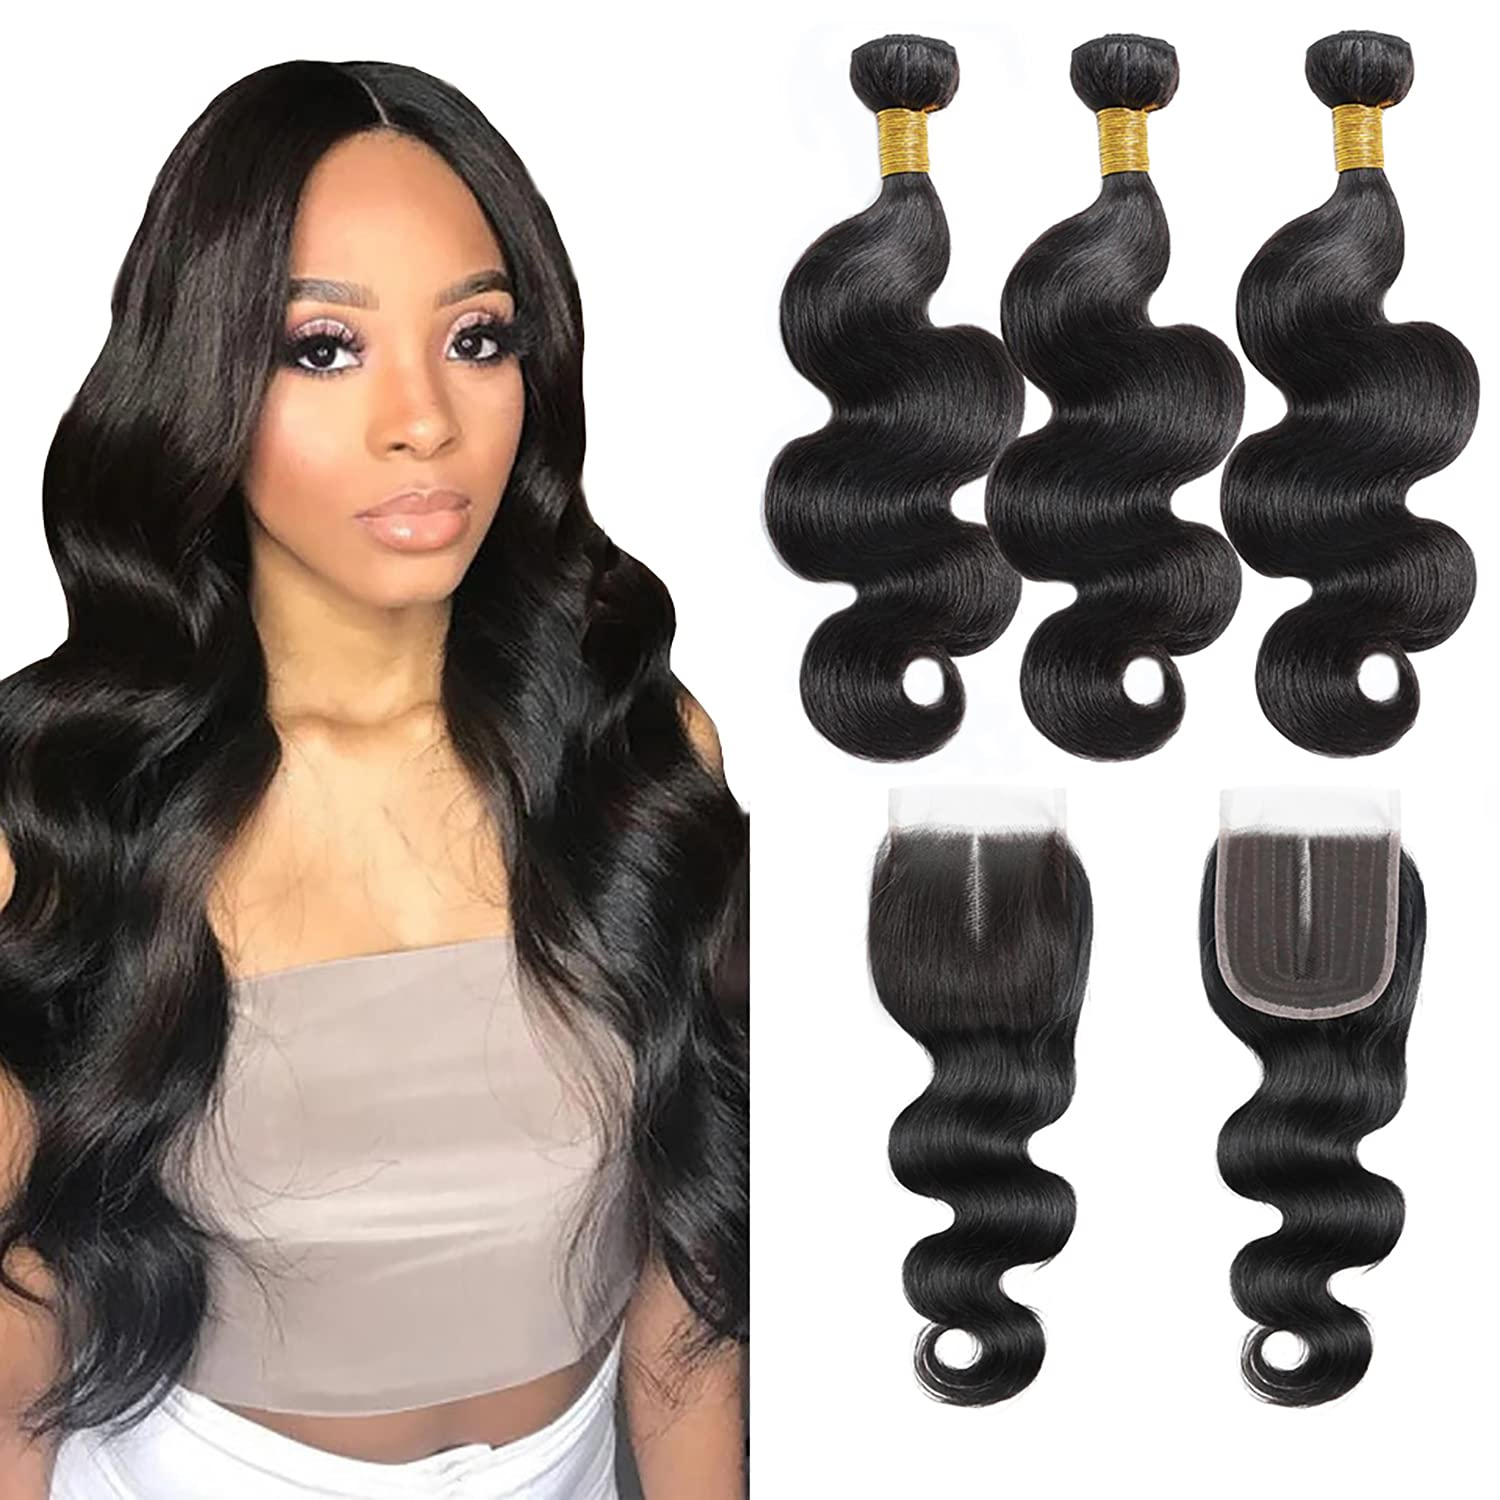 Body Wave 3 Bundles Human Hair 70% OFF Colorado Springs Mall Outlet with Pa 12 Closure 14+8 Middle 10